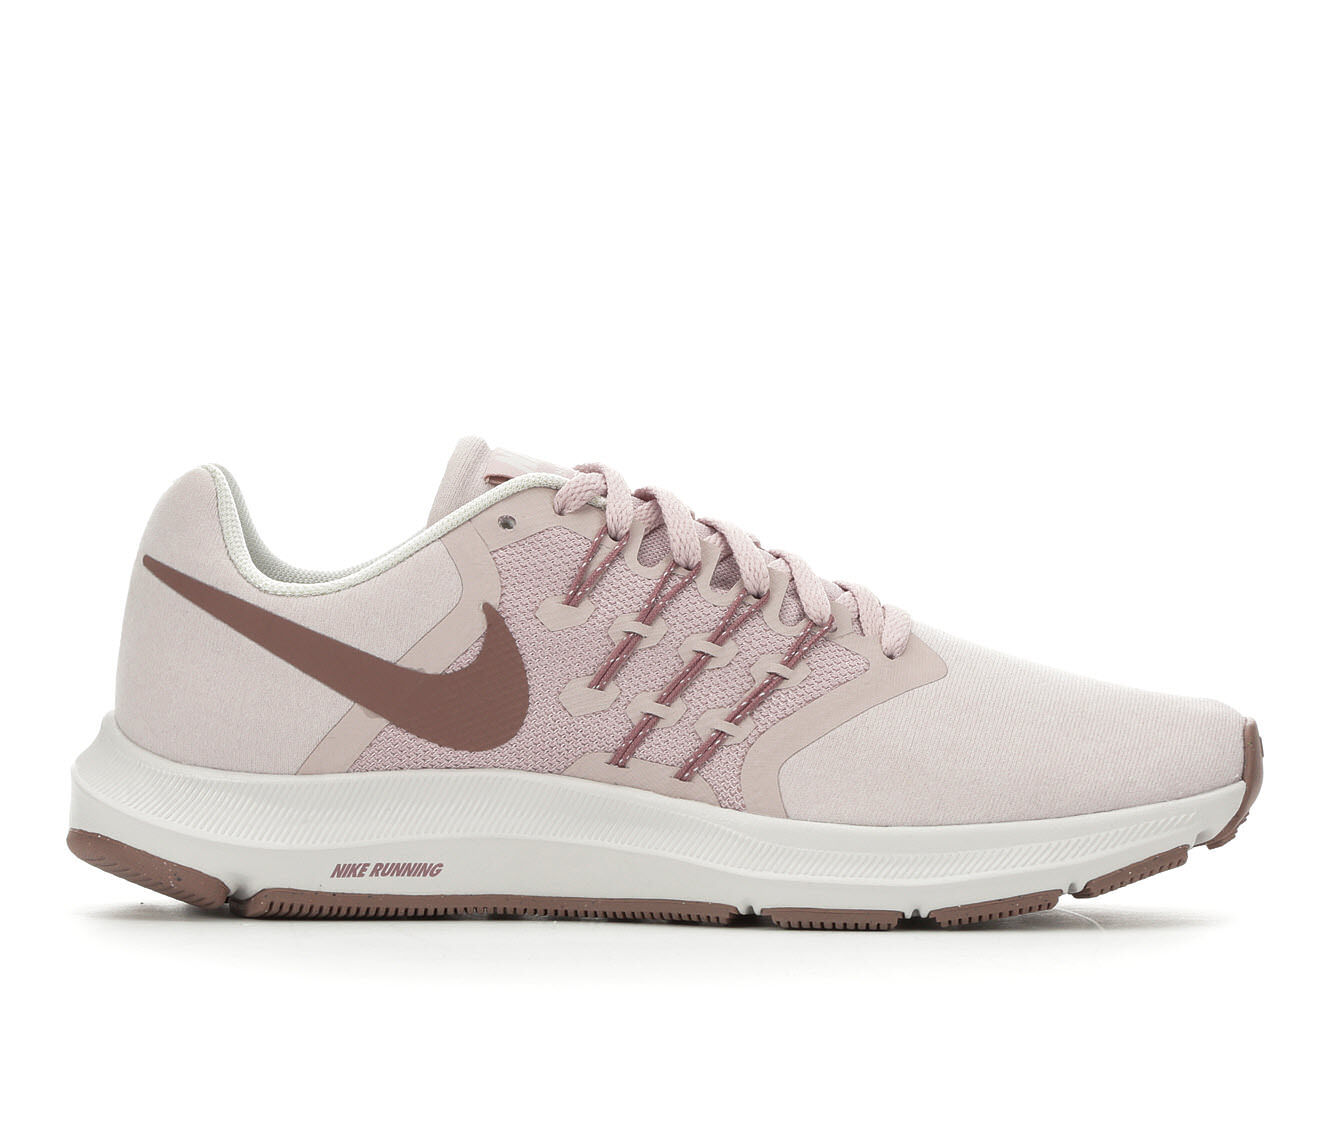 low price Women's Nike Run Swift Running Shoes Rose/Mauve/Gry